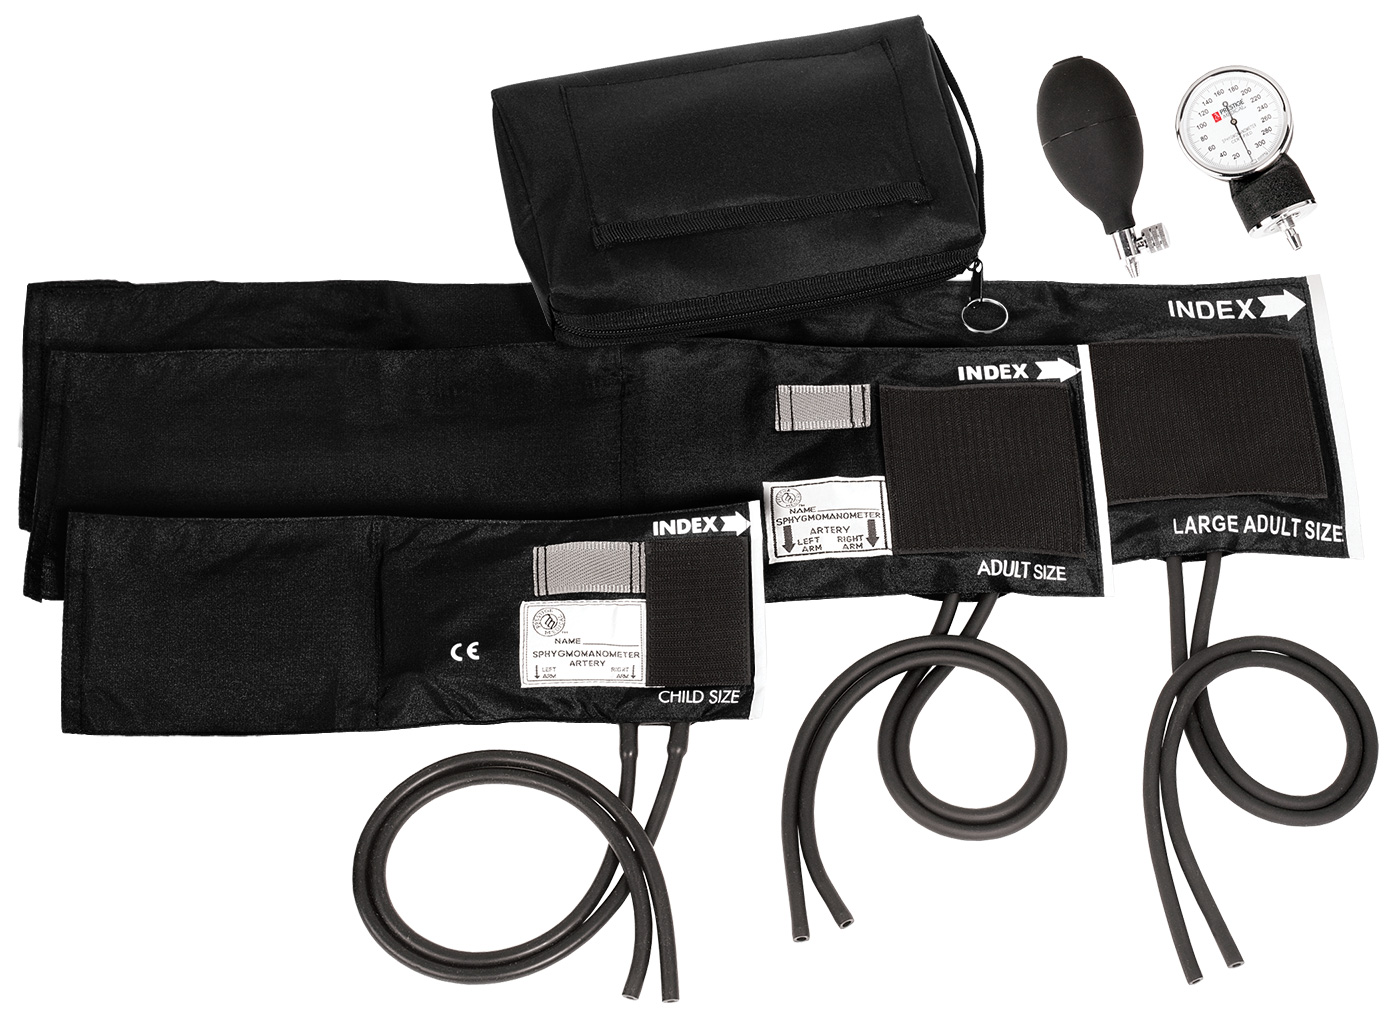 3-in-1 Aneroid Sphygmomanometer Set with Carry Case